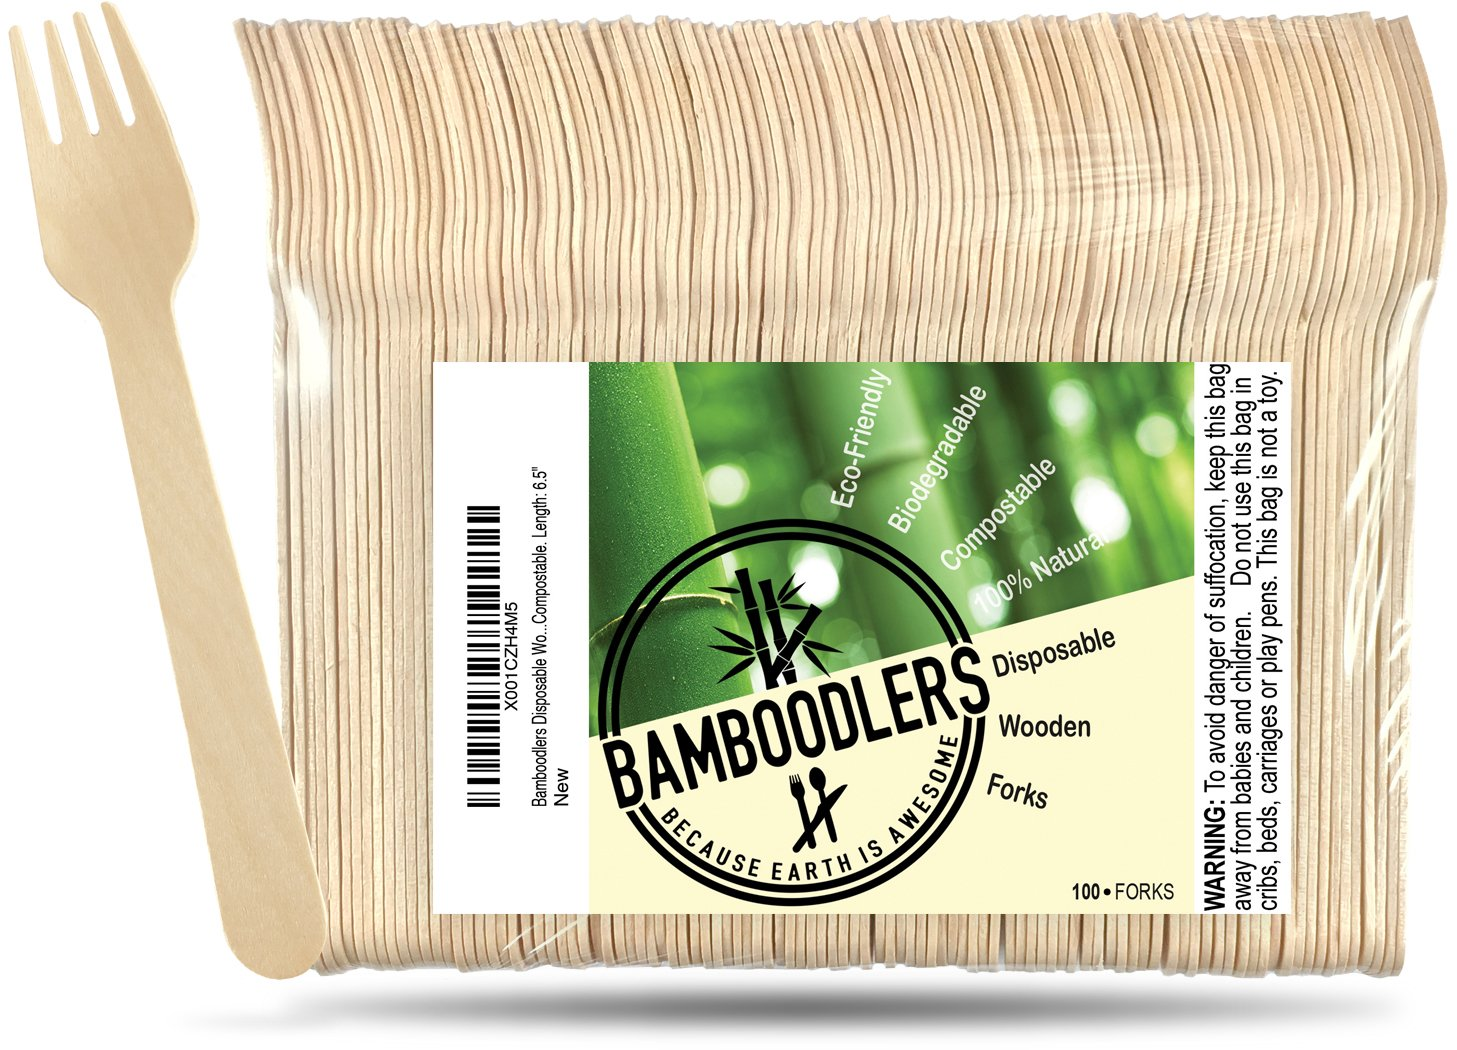 Disposable Wooden Forks by Bamboodlers | 100% All-Natural, Eco-Friendly, Biodegradable, and Compostable - Because Earth is Awesome! Pack of 100-6.5'' Forks. by BAMBOODLERS